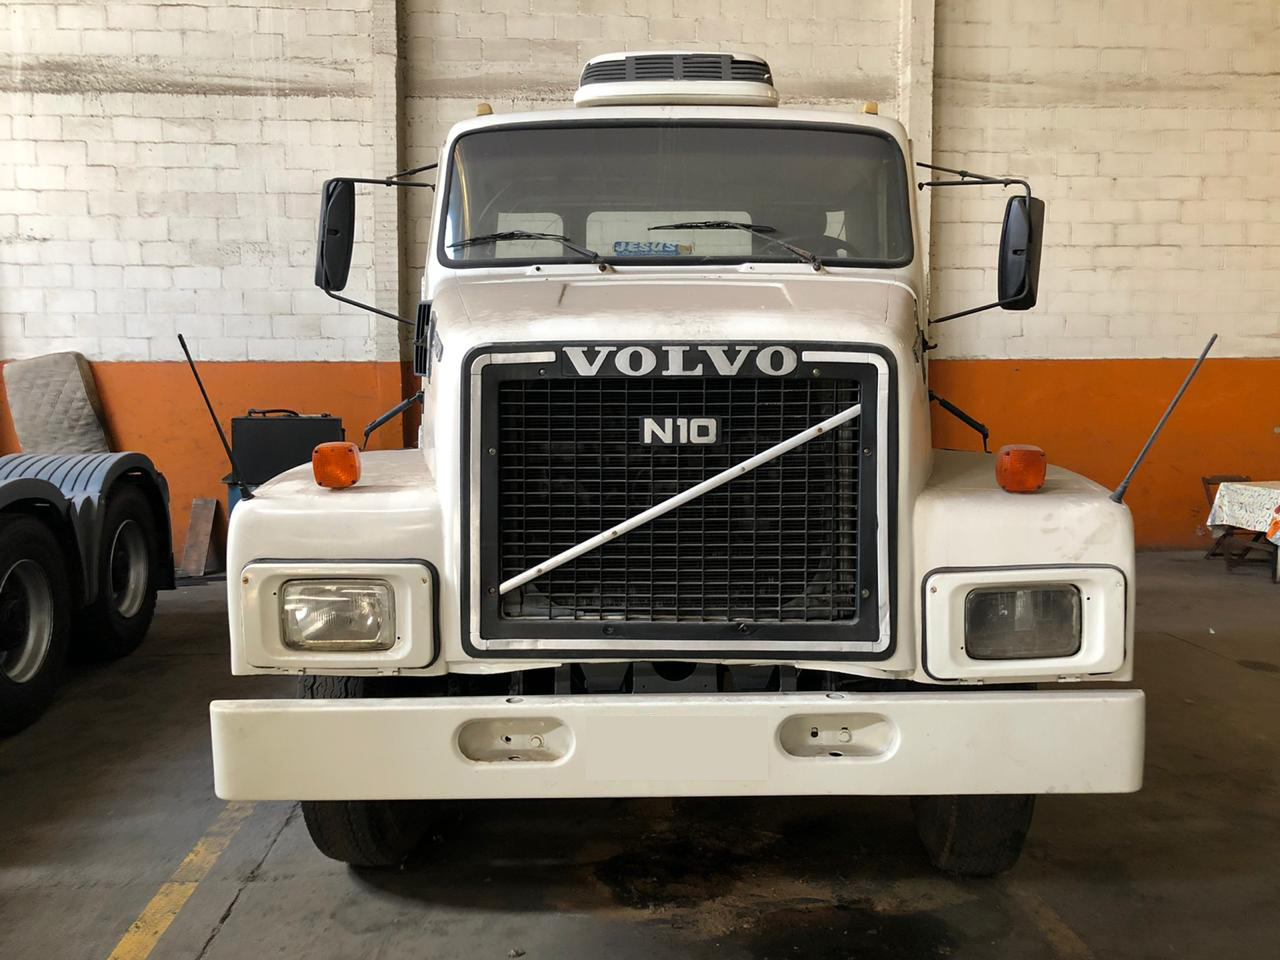 VOLVO N10 TURBO 280 4X2 1987